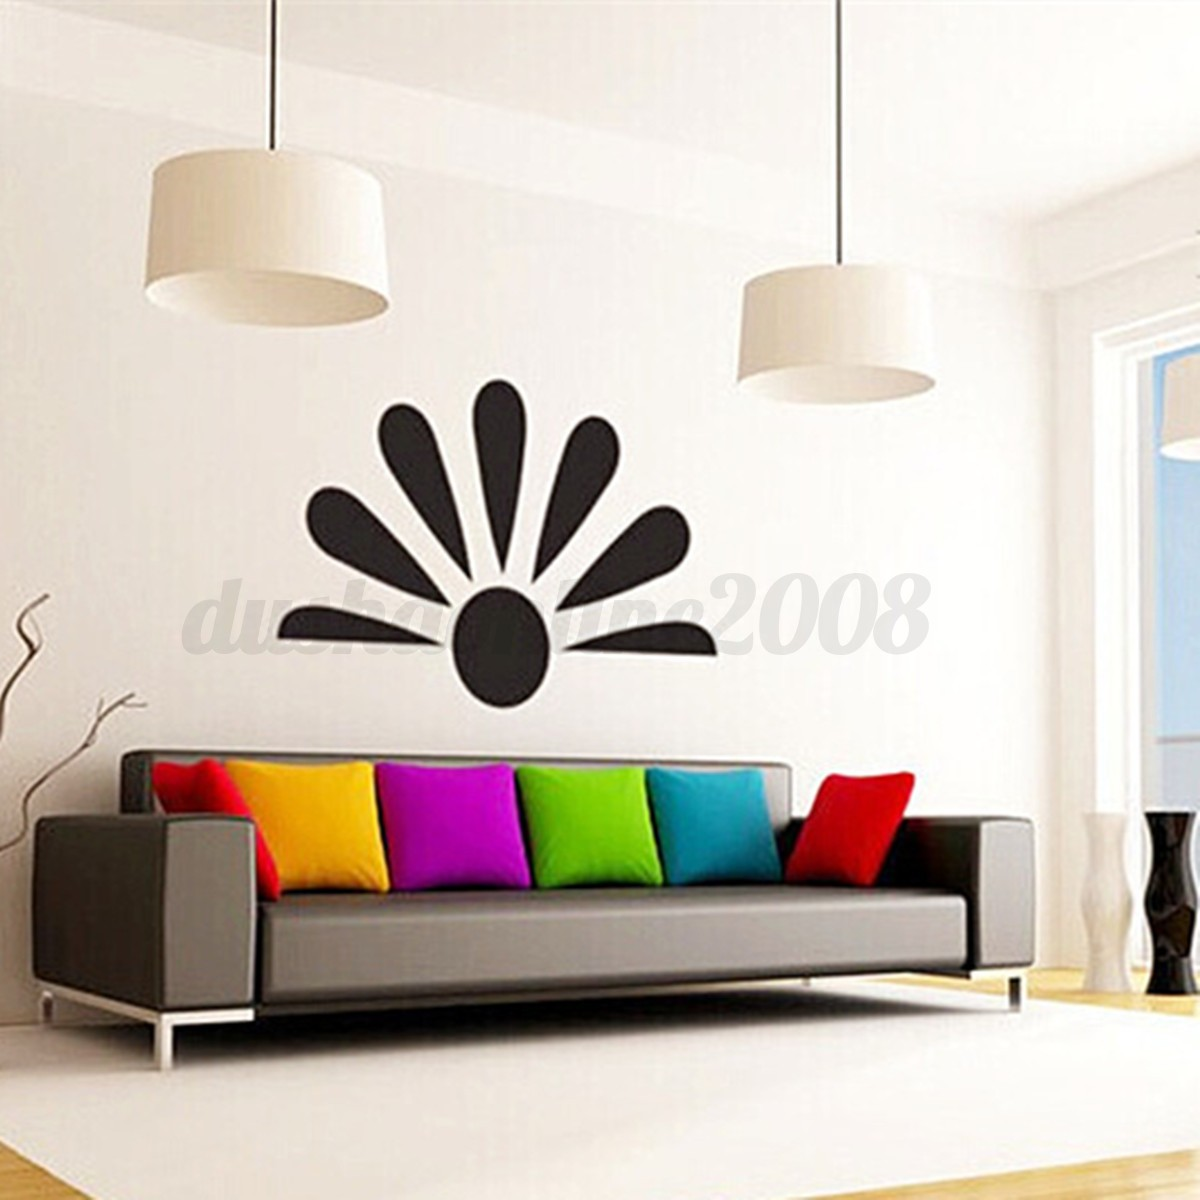 8pcs epanouissement diy autocollant mural miroir adh sif for Decoration adhesif mural